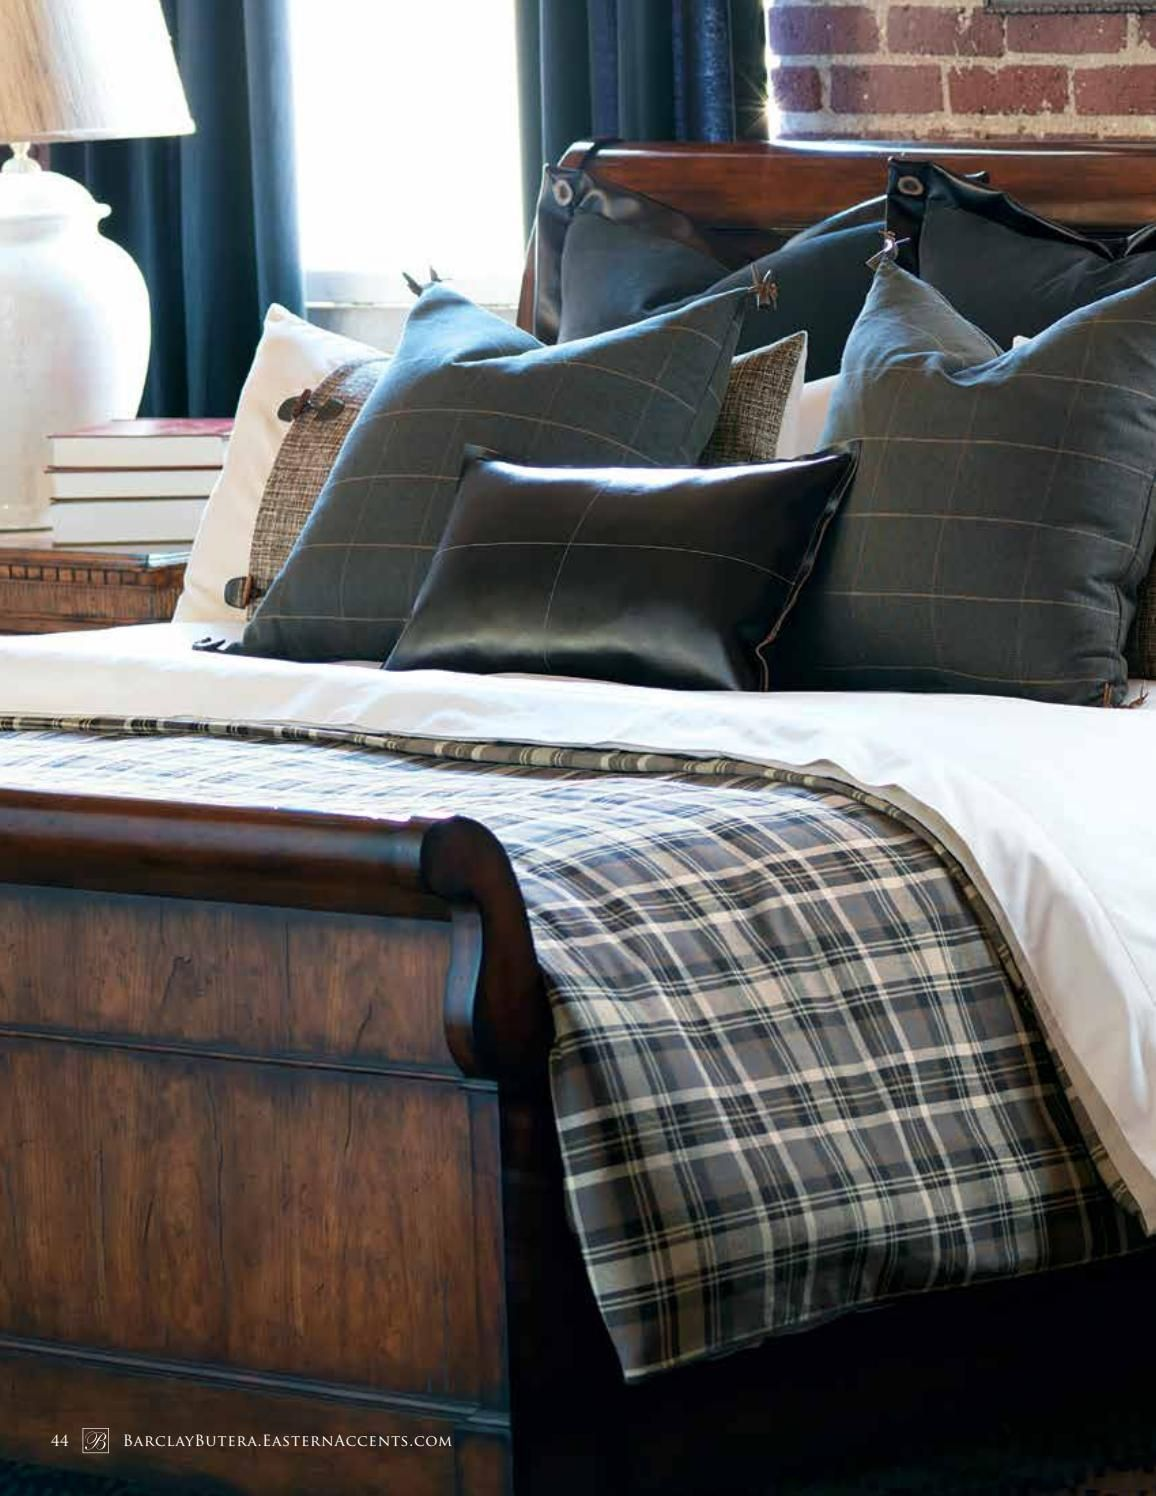 Barclay Butera Lifestyle Bedding In 2020 Luxurious Bedrooms